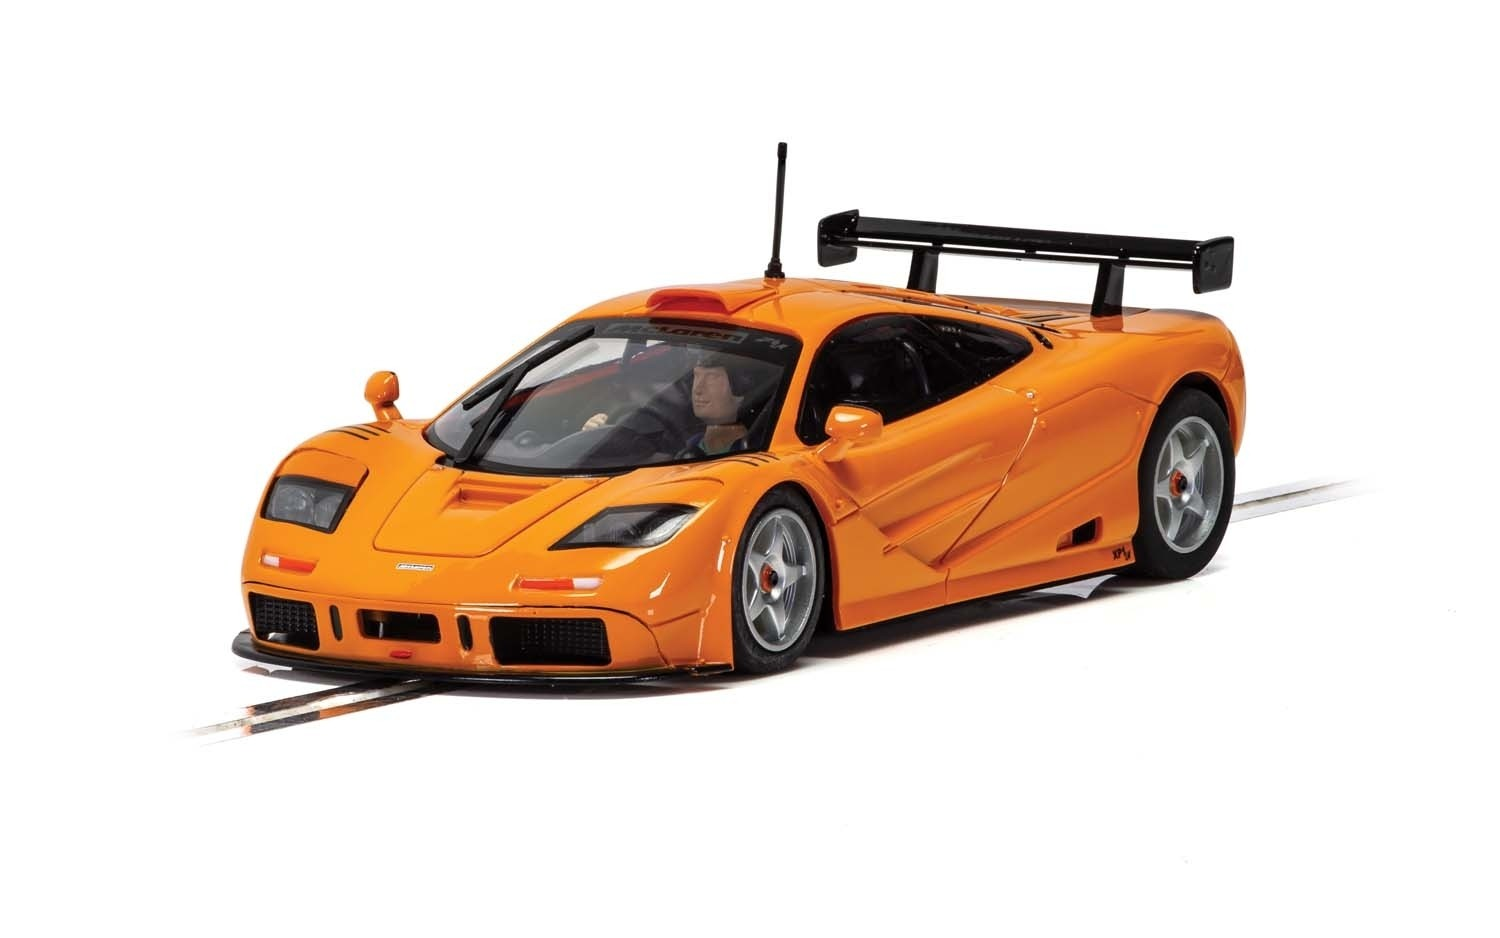 MCLAREN F1 GTR - PAPAYA ORANGE